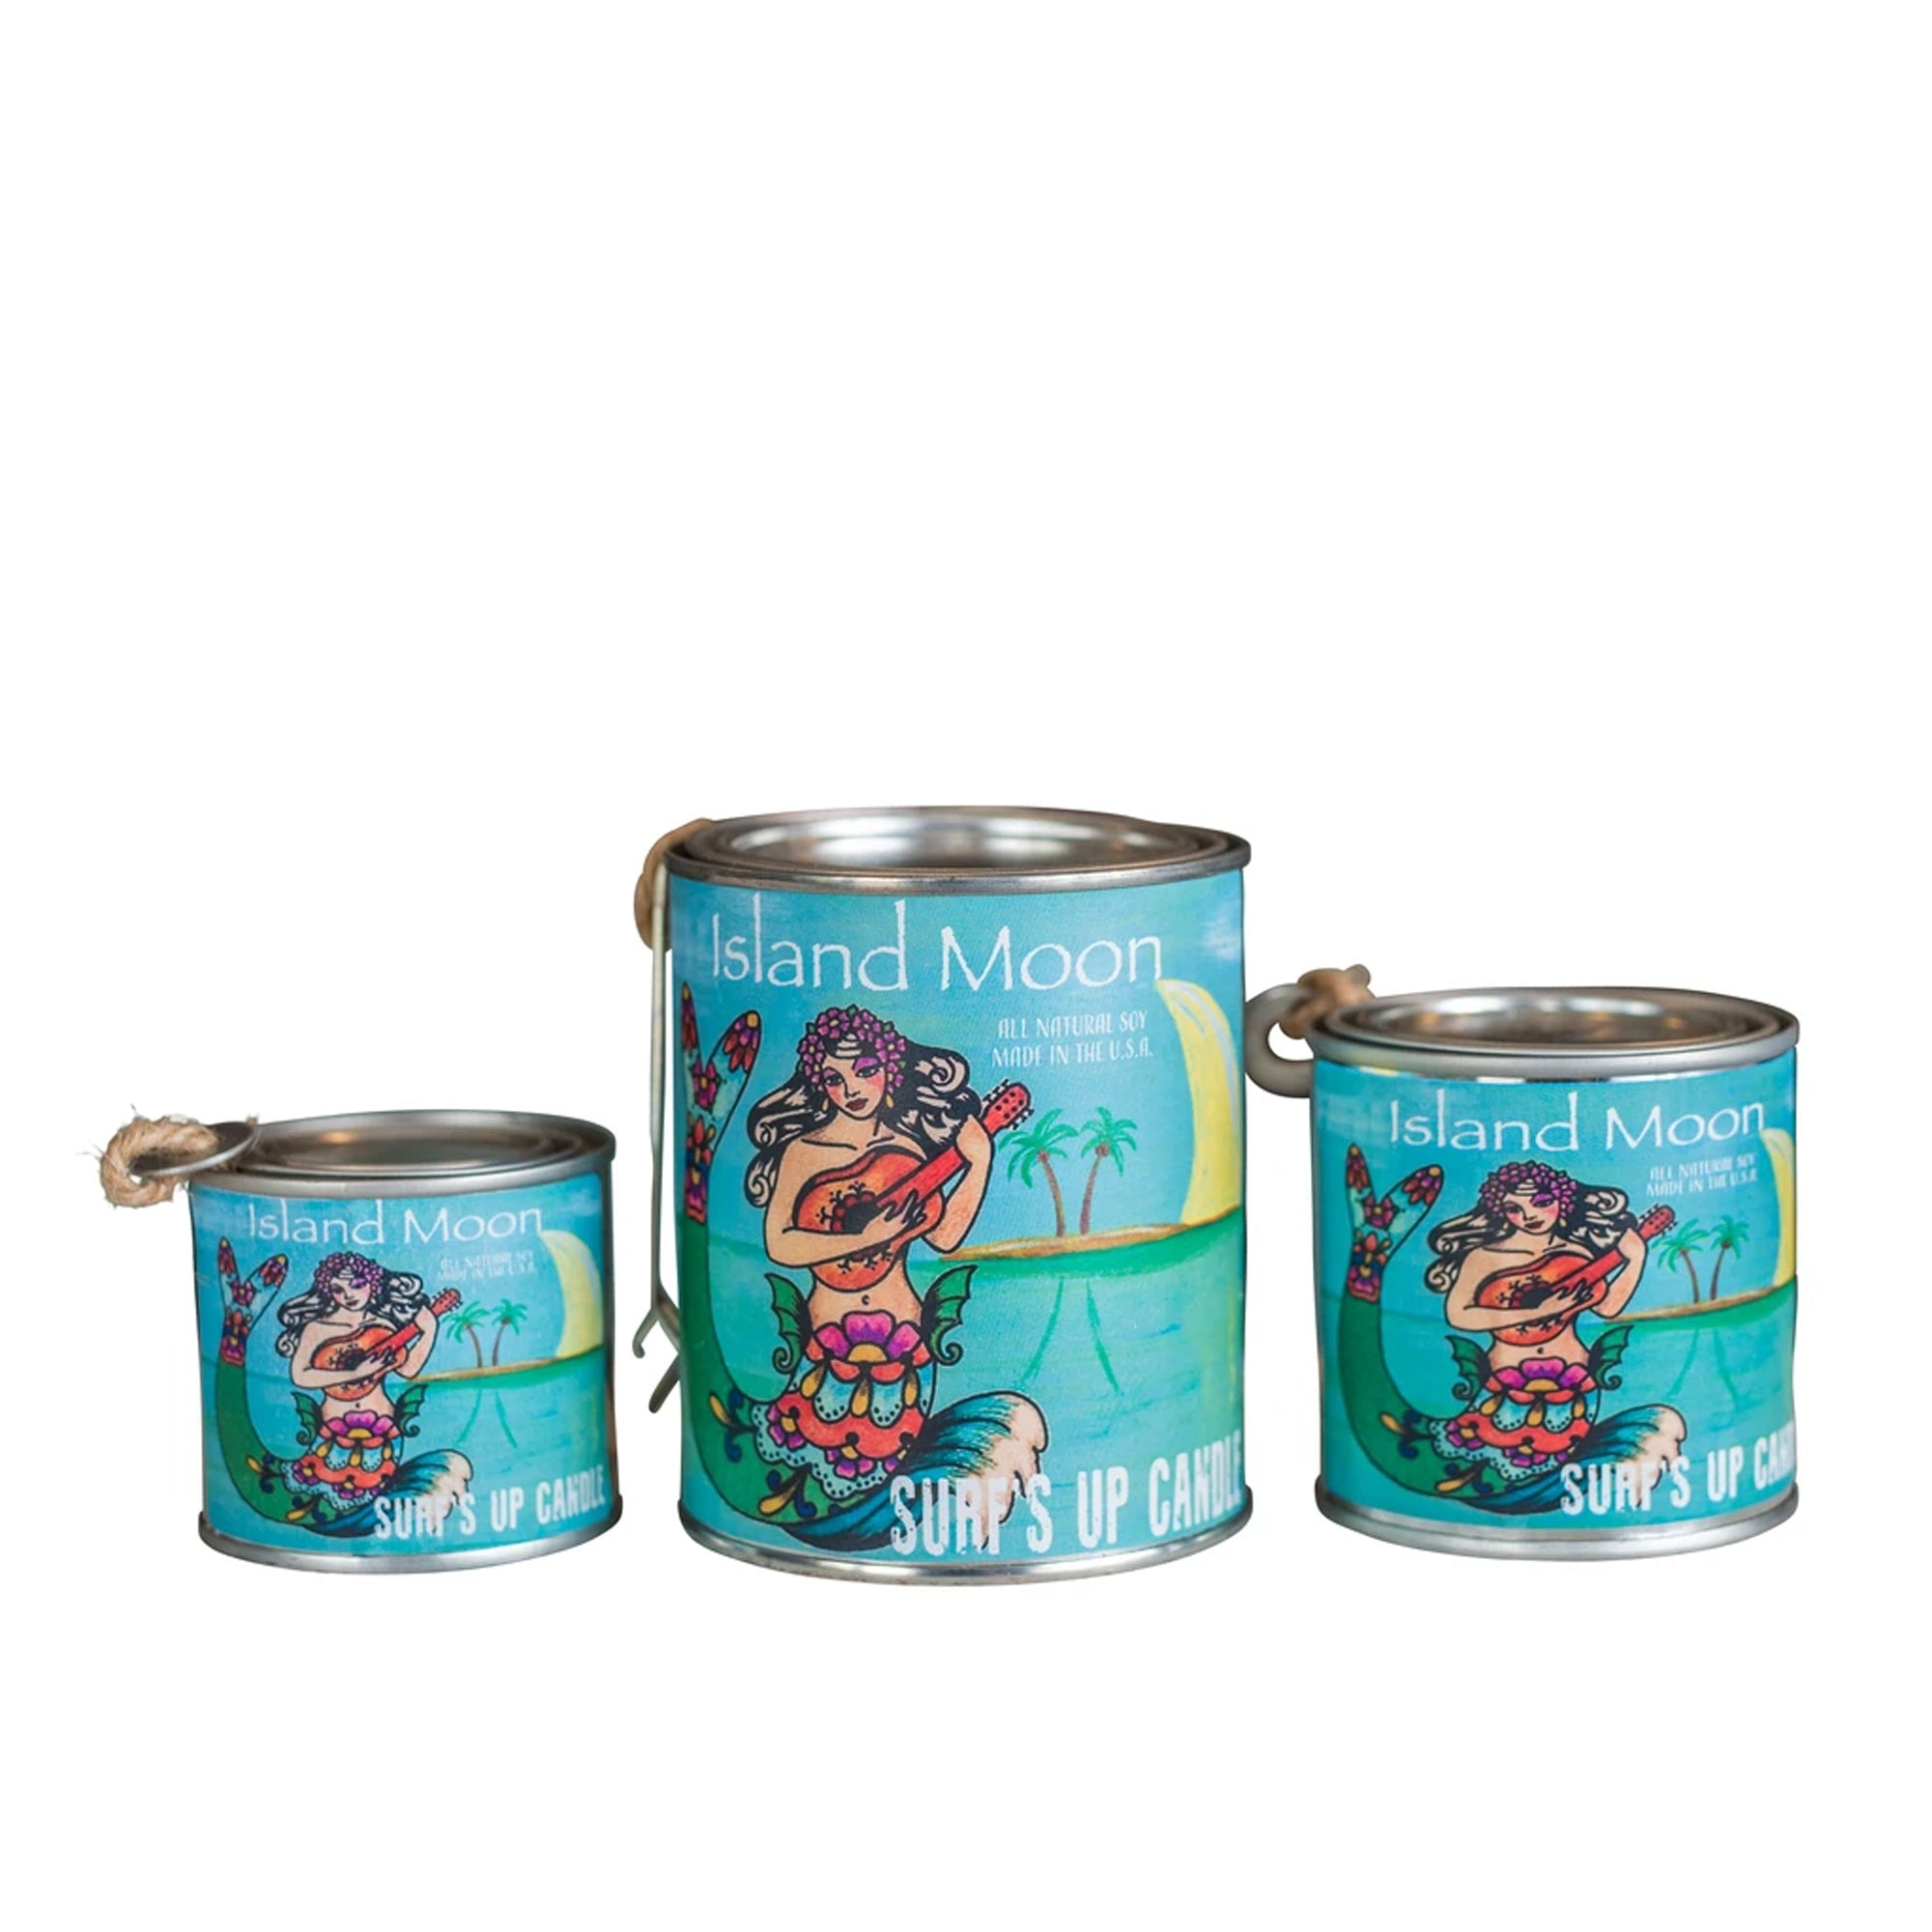 Surf's Up Paint Can Soy Candle - Island Moon